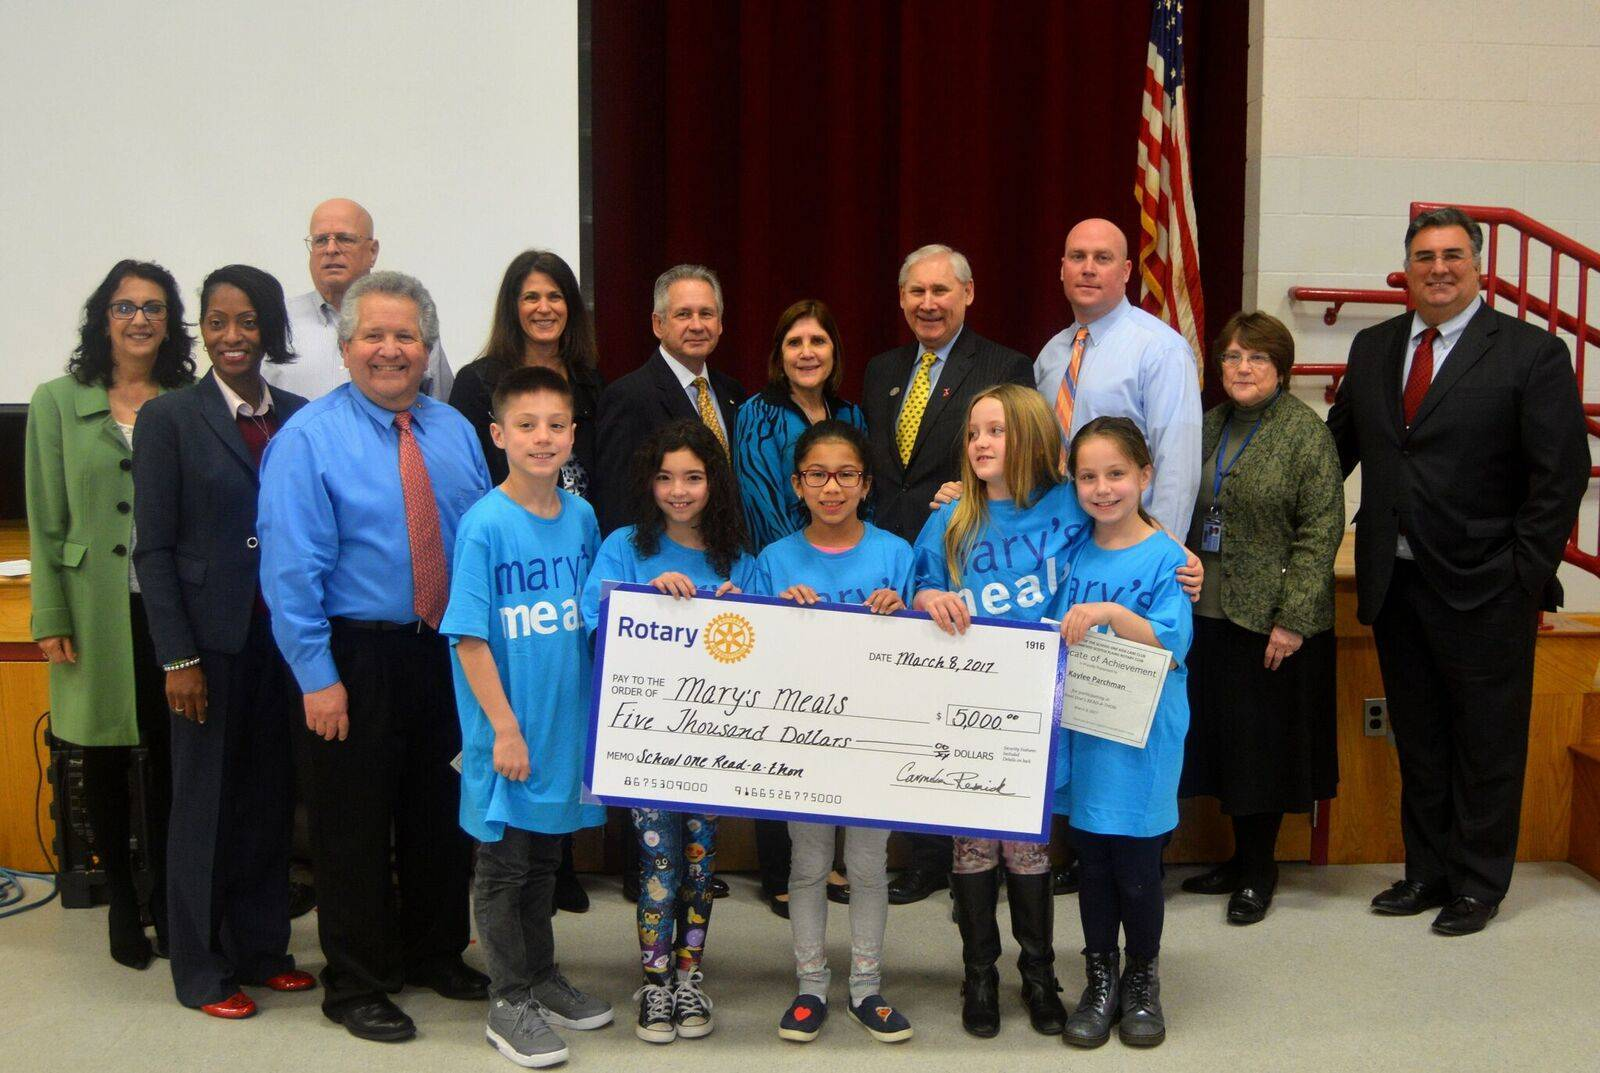 school one students in scotch plains raise for needy kids students at school one elementary school pose for a picture community leaders including sp f superintendent dr margaret hayes scotch plains or al